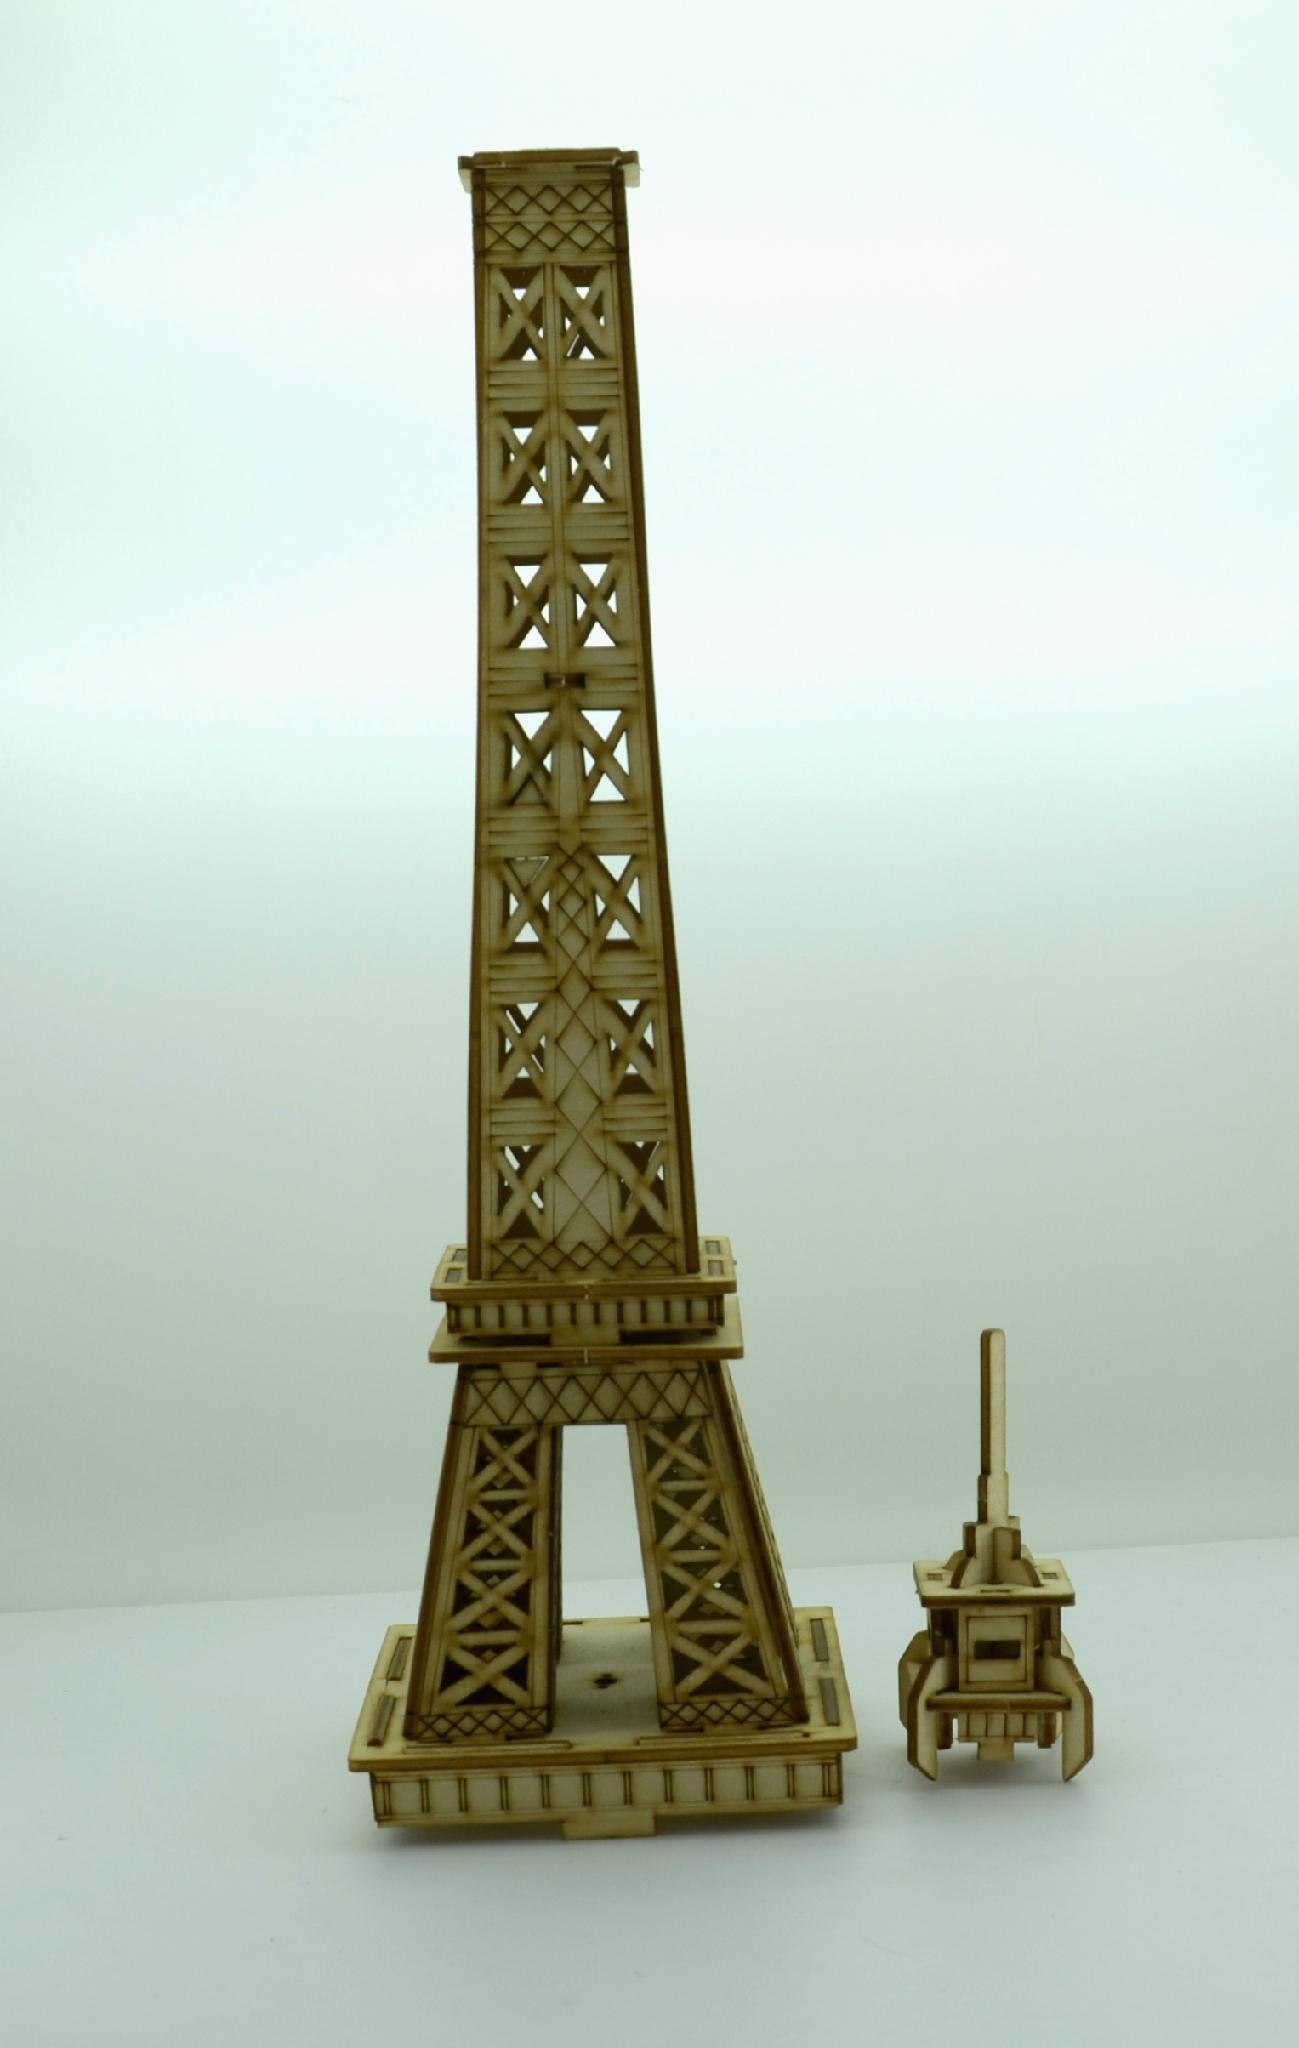 Eiffel tower world architecture plan toy   wooden model 3